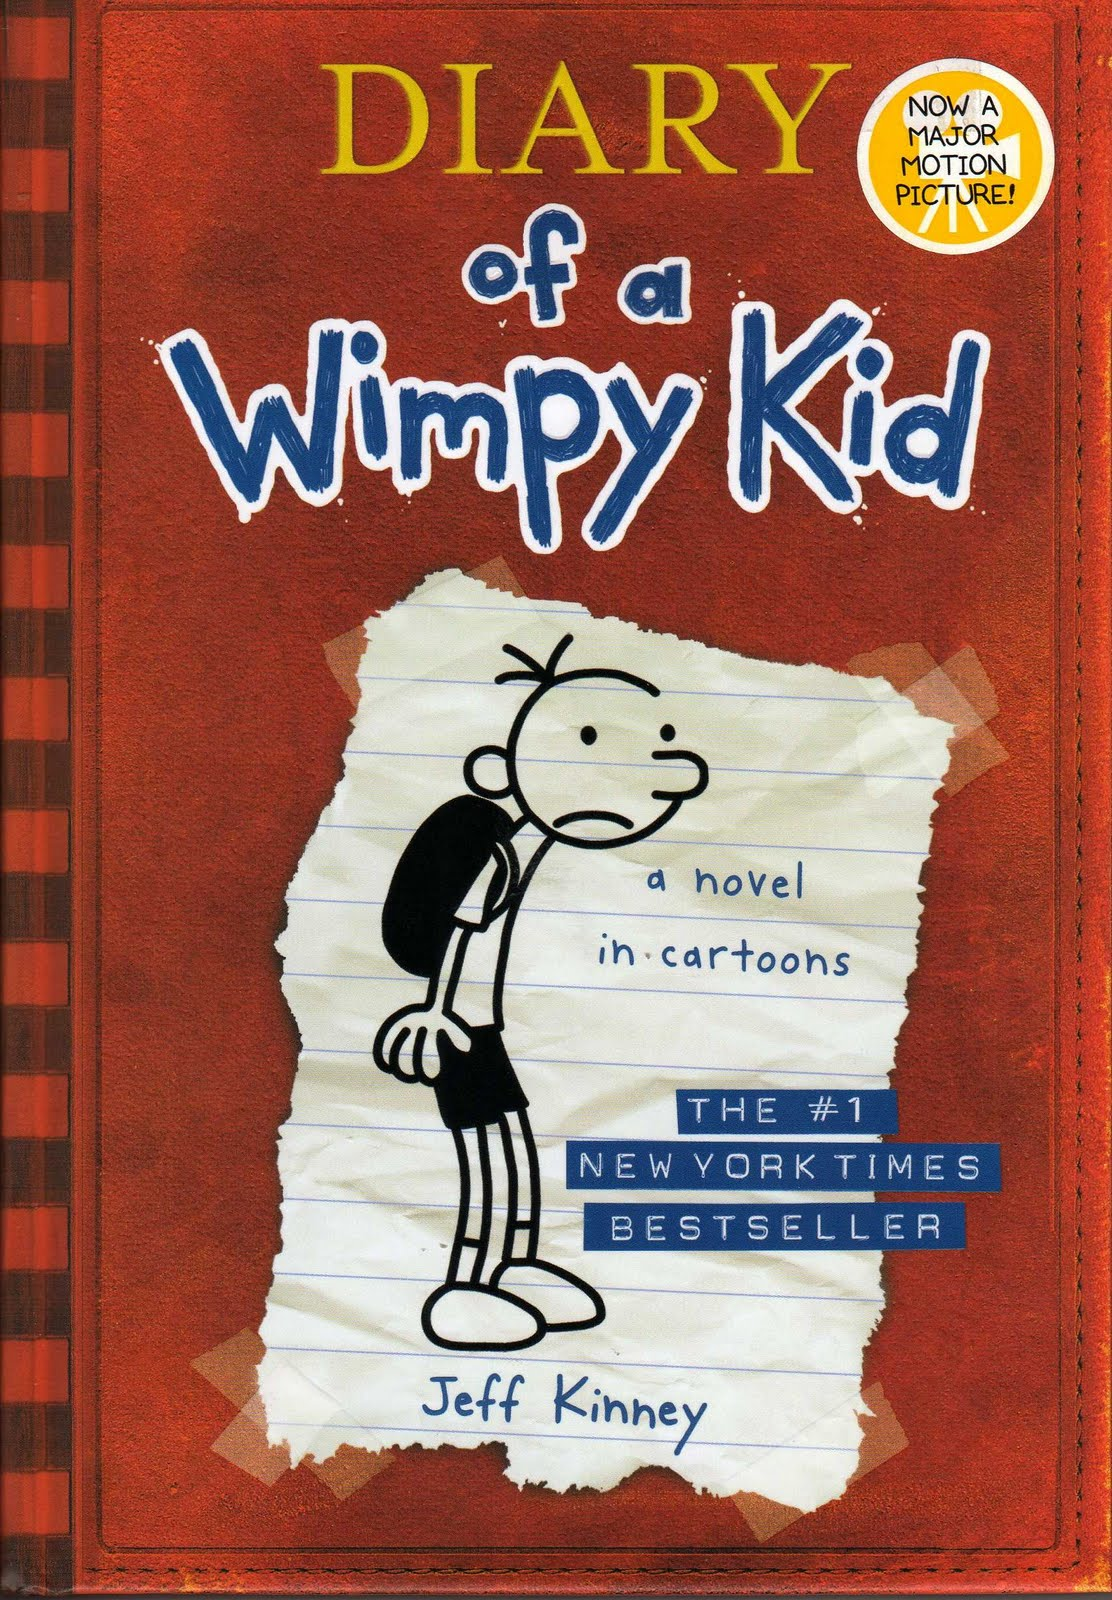 analysis of diary of a wimpy Diary of a wimpy kid: rodrick rules is a satirical realistic fiction novel by american author and cartoonist jeff kinney, based on the funbraincom version.